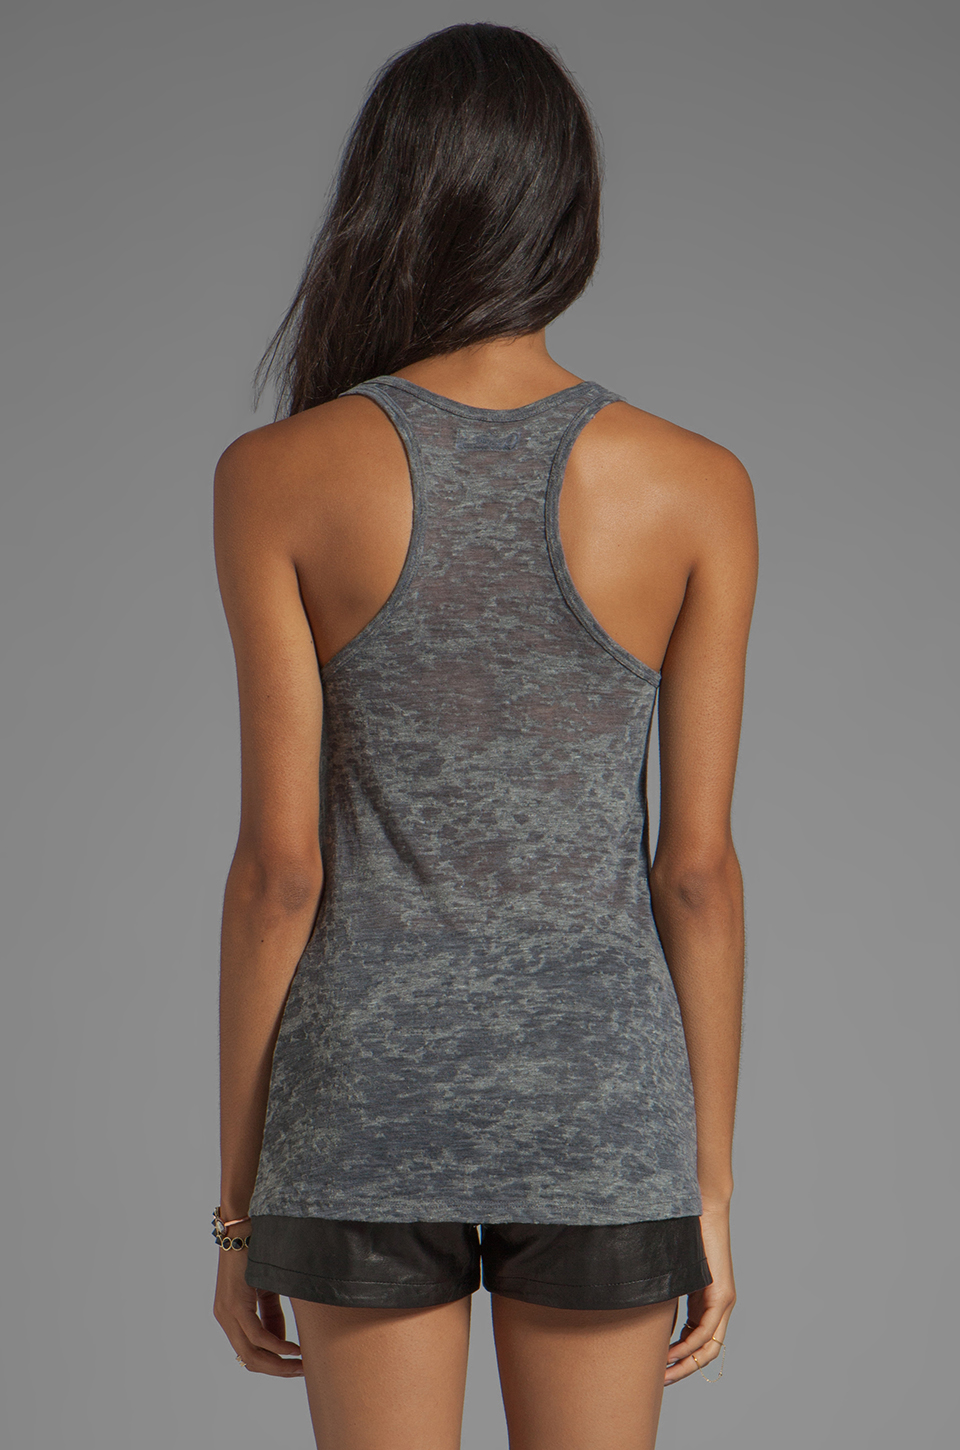 Lauren Moshi Nancy Color Miami Beach Swing Tank in Heather Grey